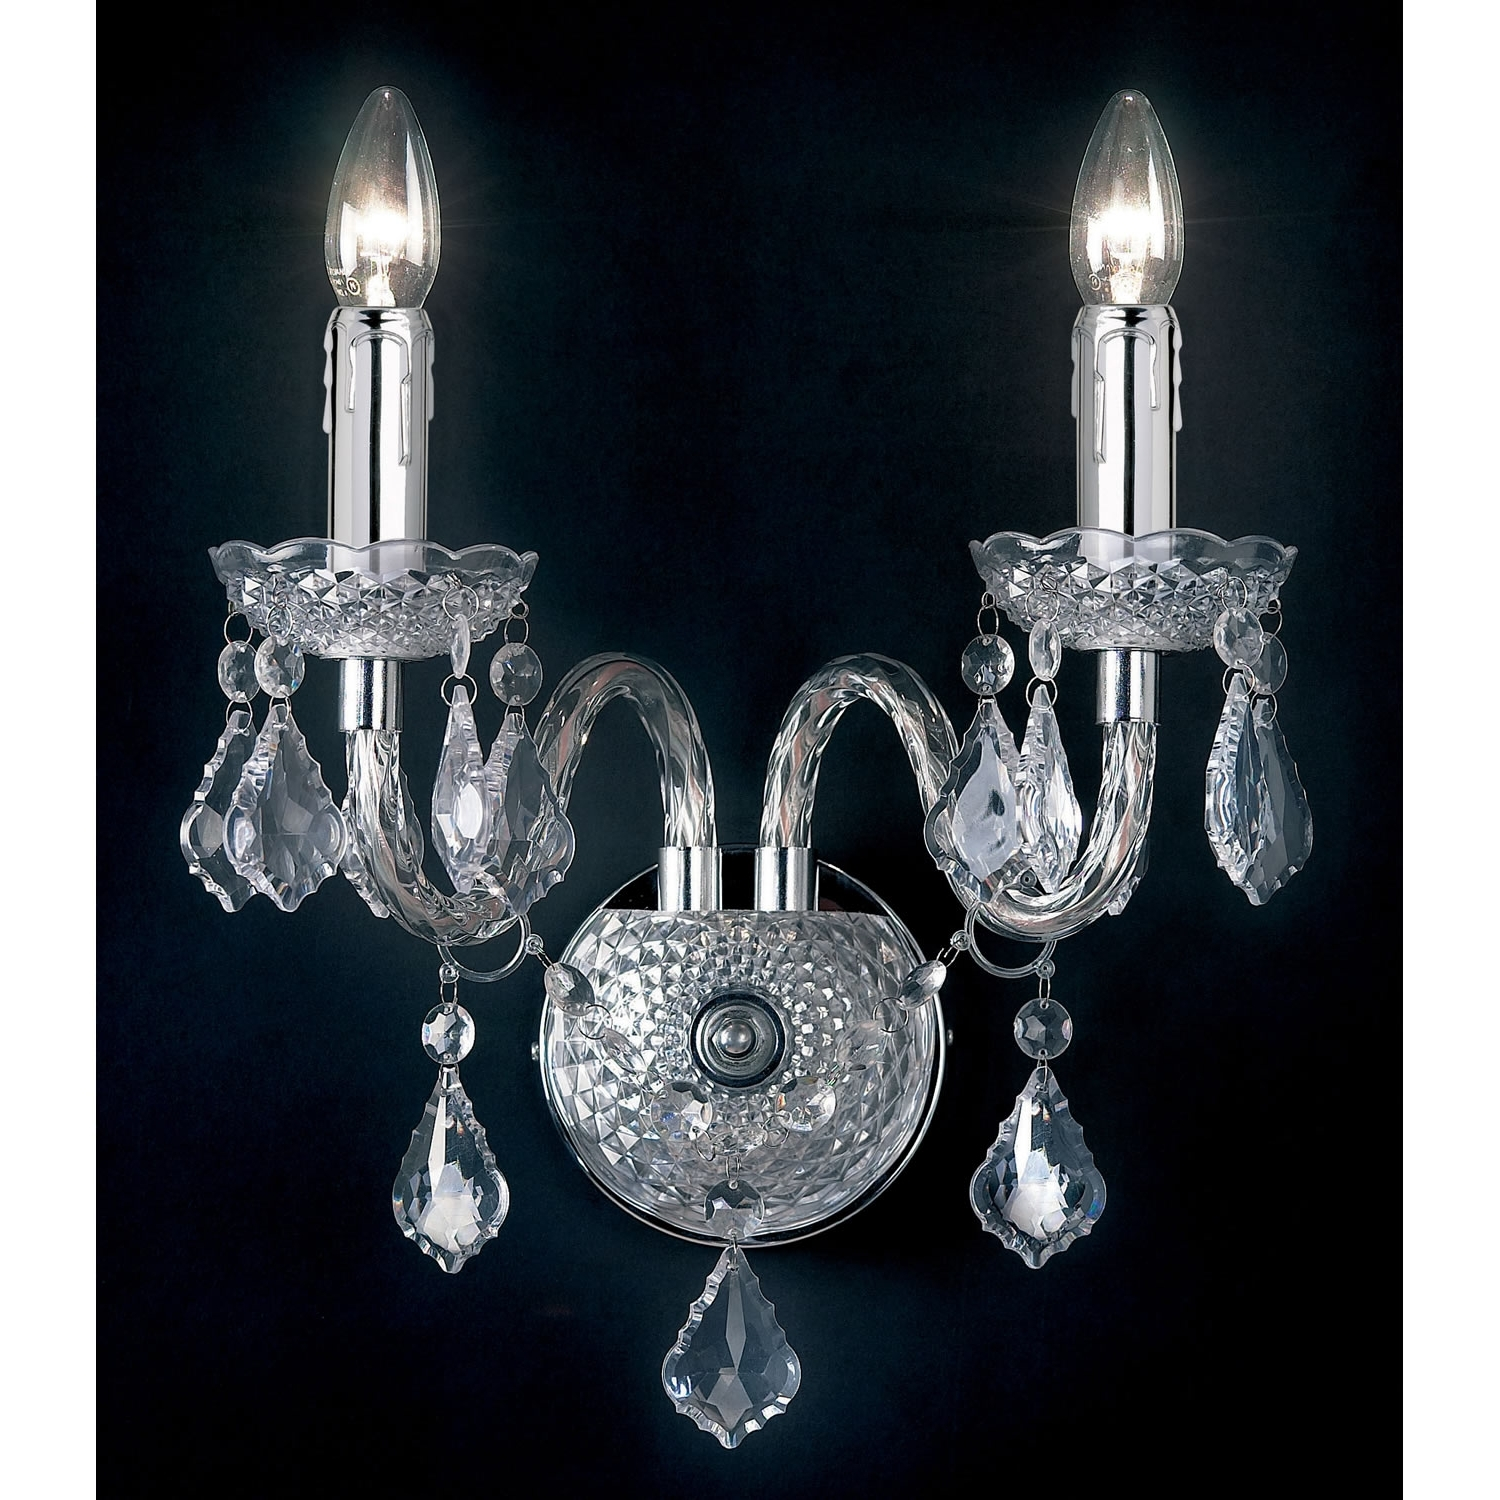 Endon Lighting 2 Light Wall Chandelier In Clear E2 80 93 Next Day For Well Known Chandelier Wall Lights (View 10 of 20)